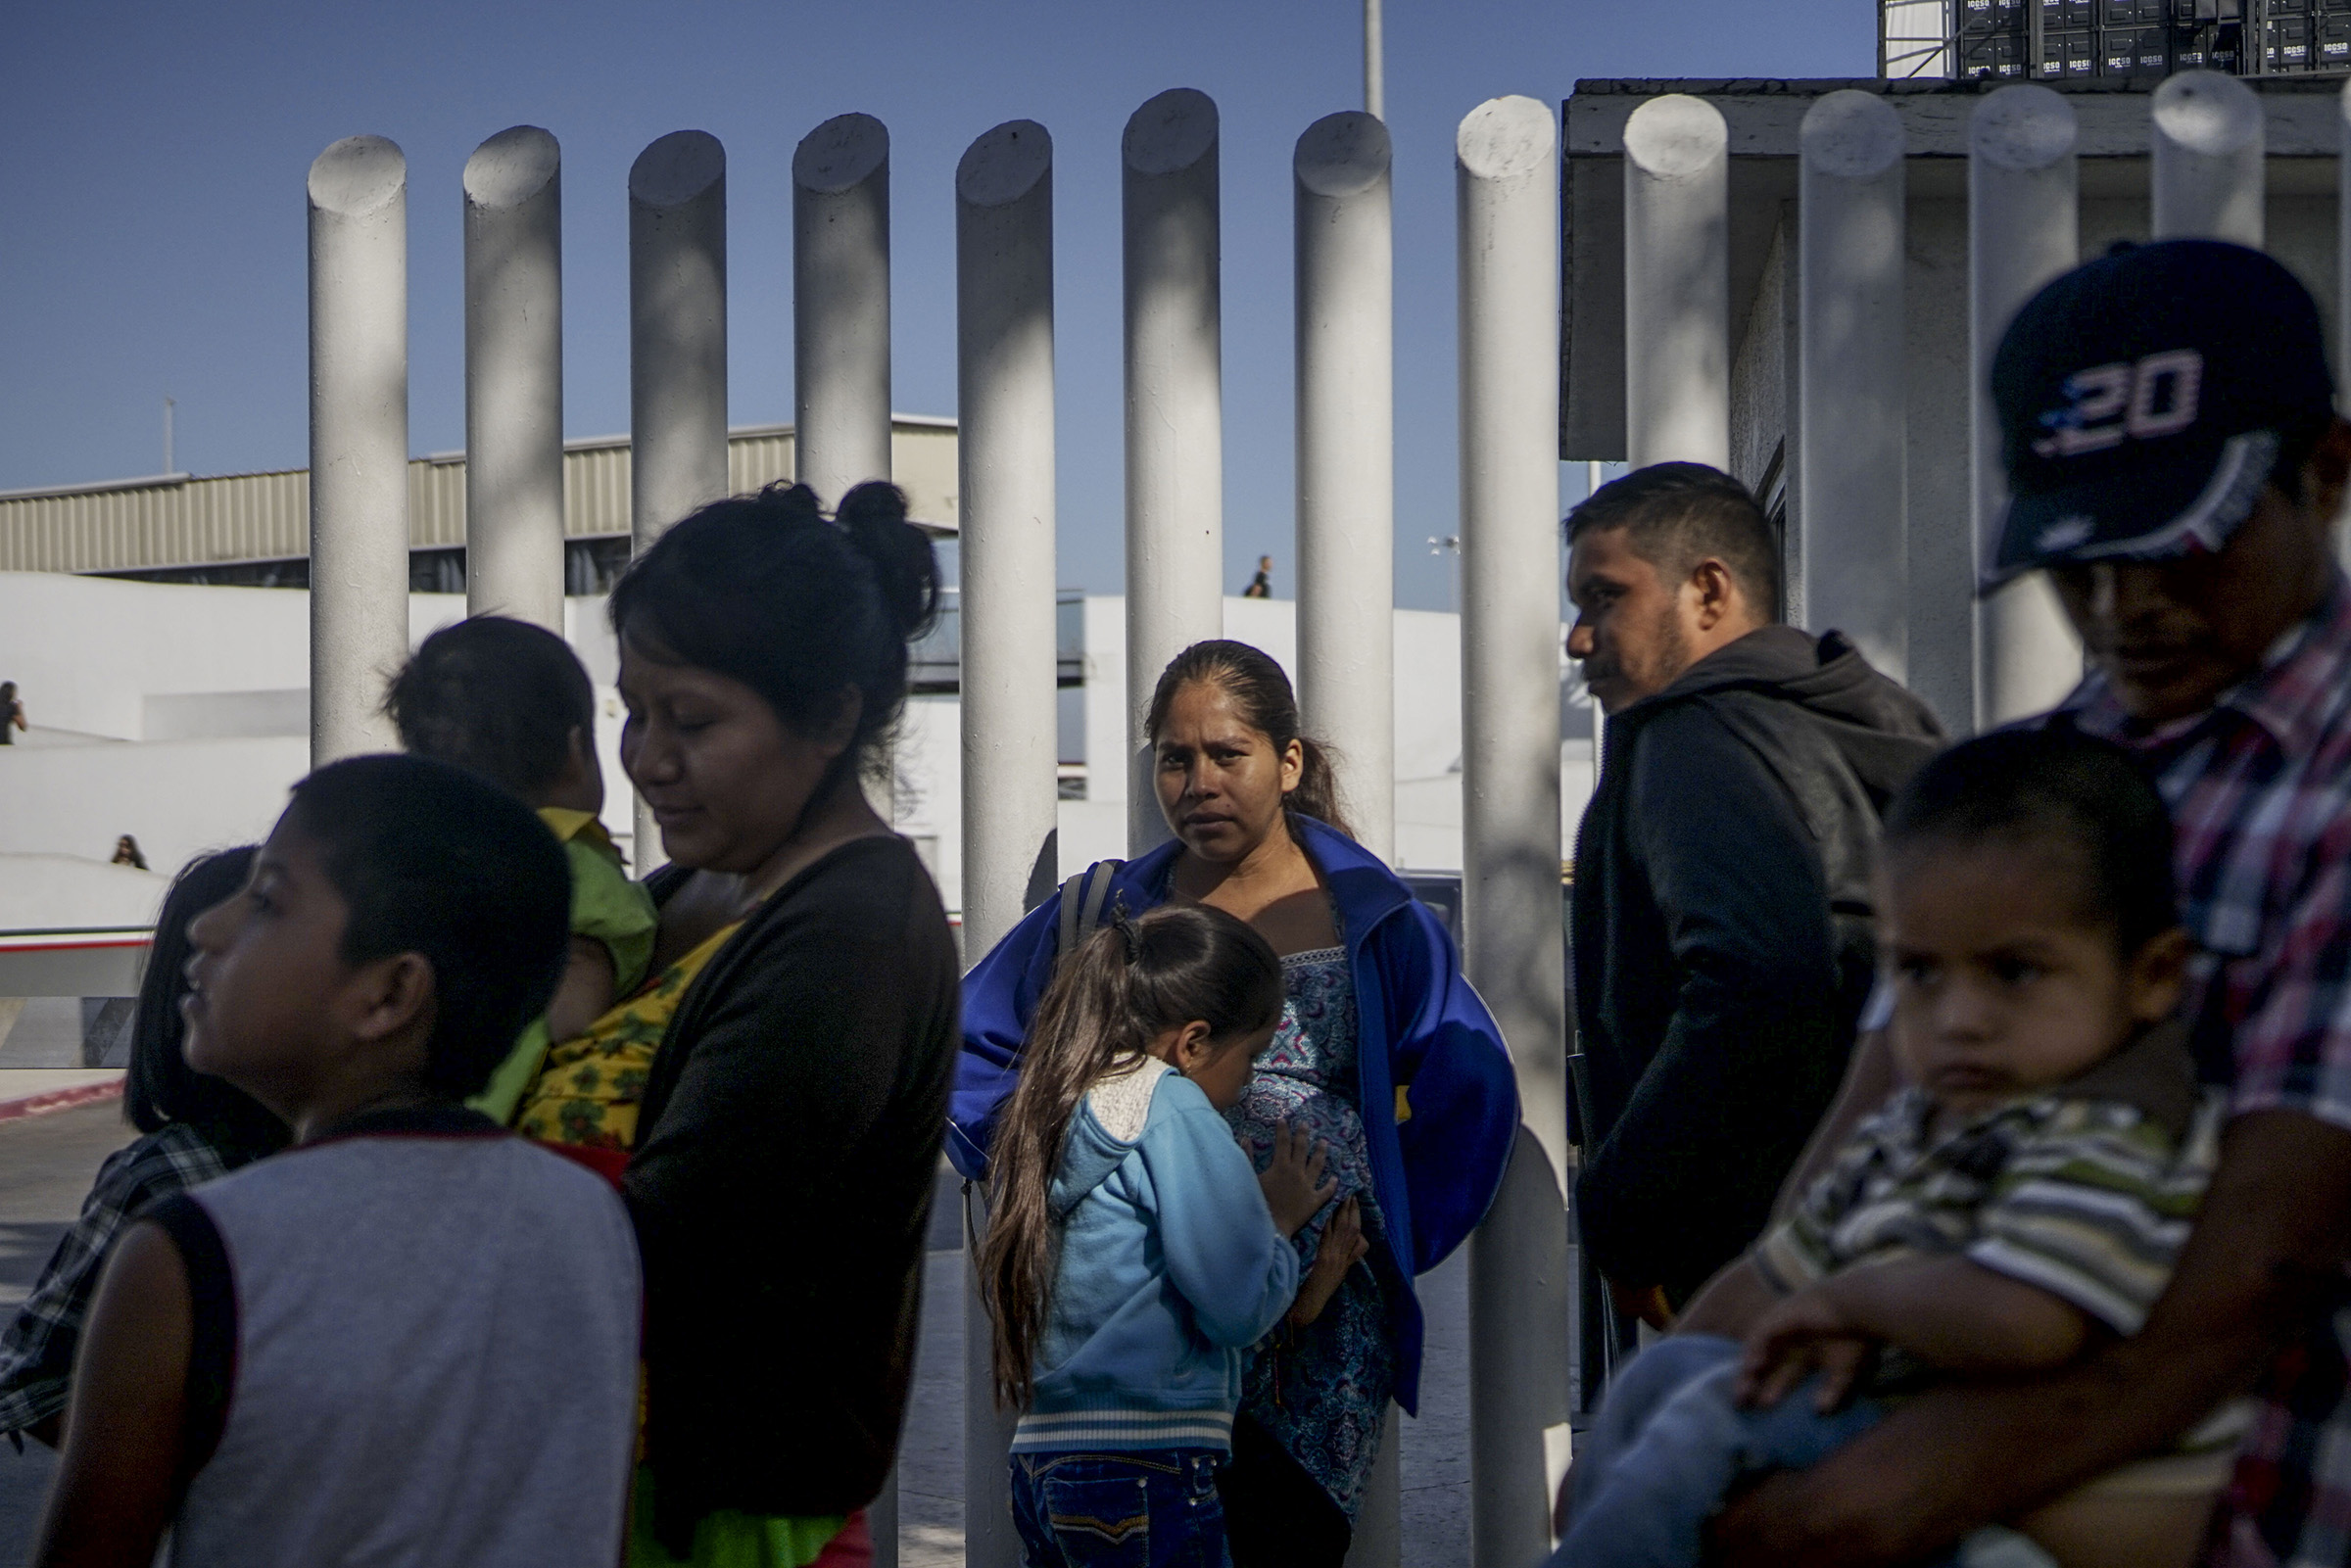 Migrants wait in line at the Mexico-United States border crossing in Tijuana, Mexico on September 12, 2019.